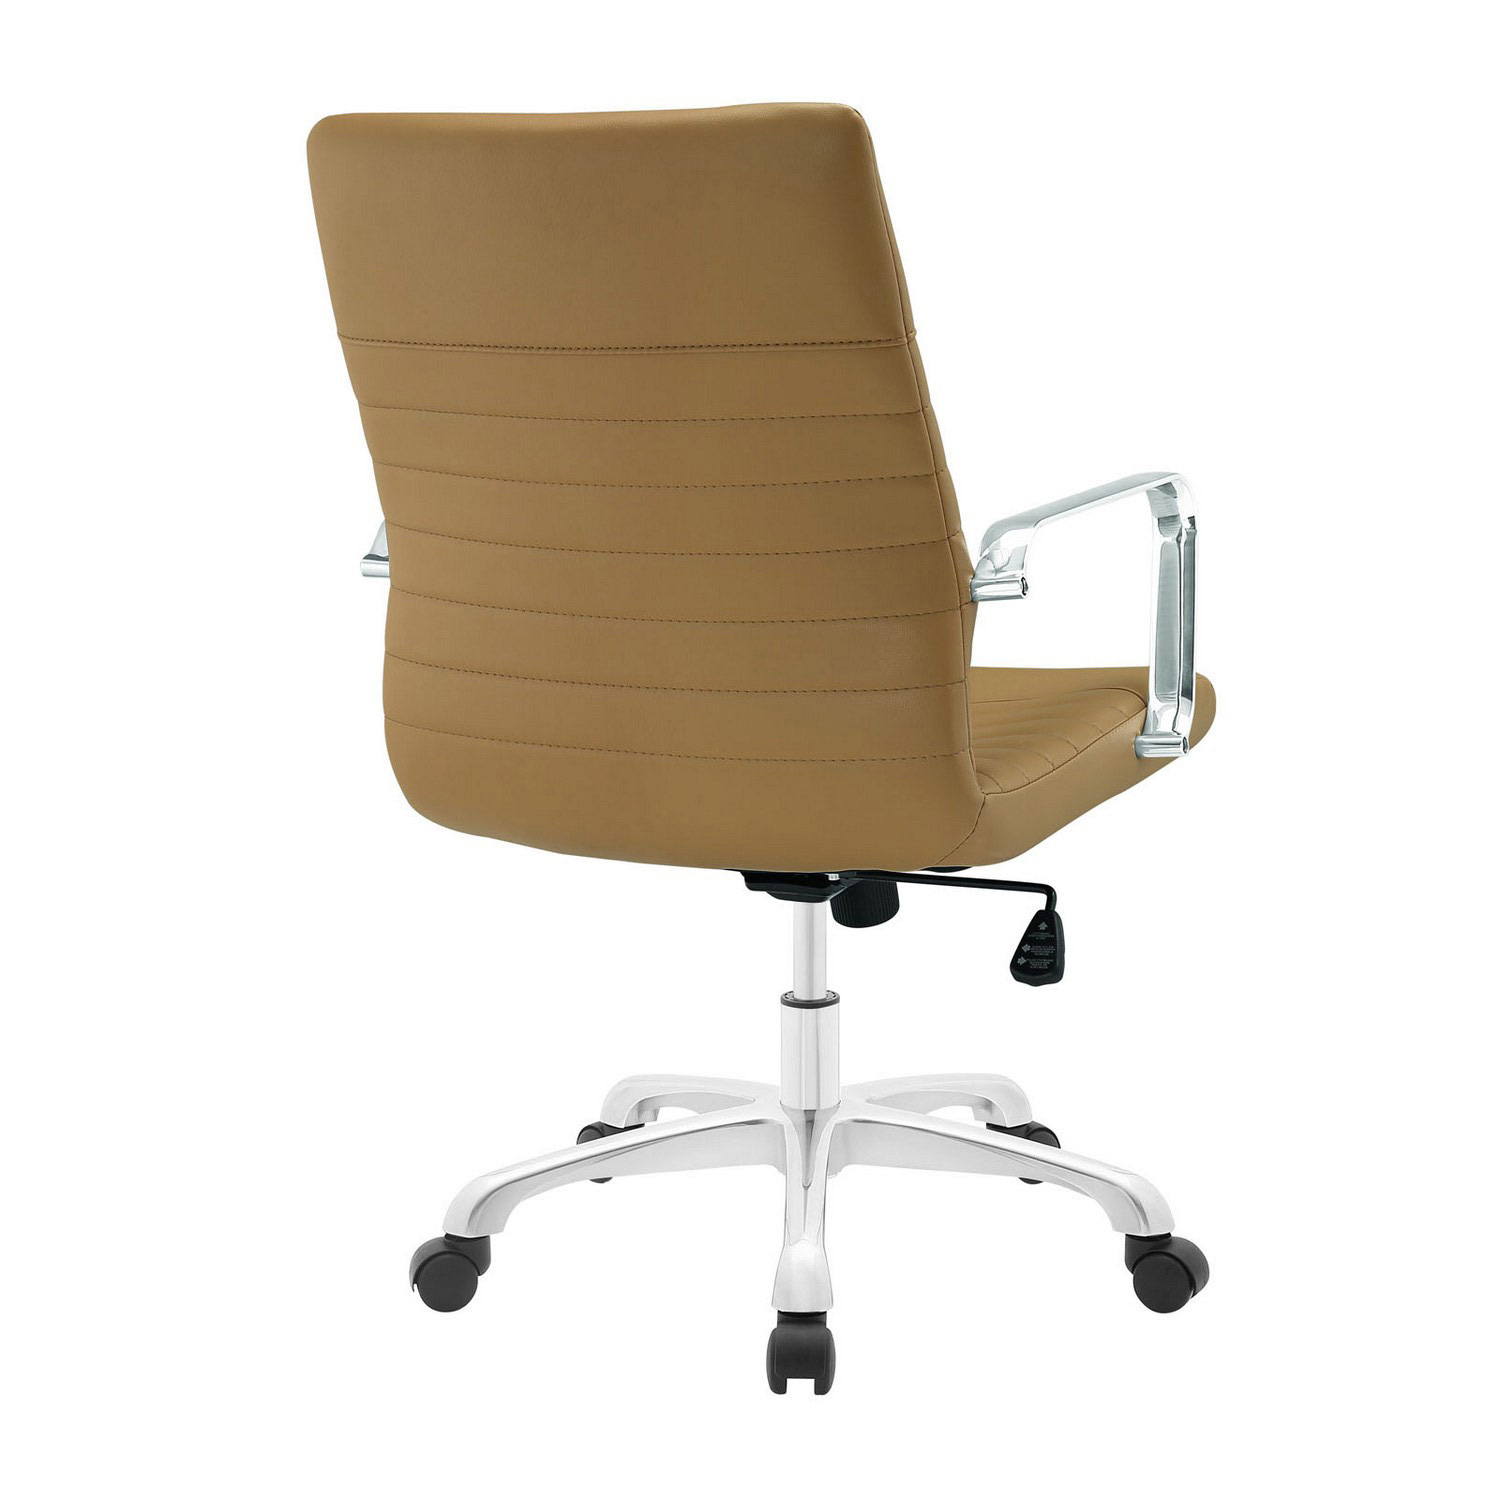 Modway Finesse Mid Back Office Chair - Tan